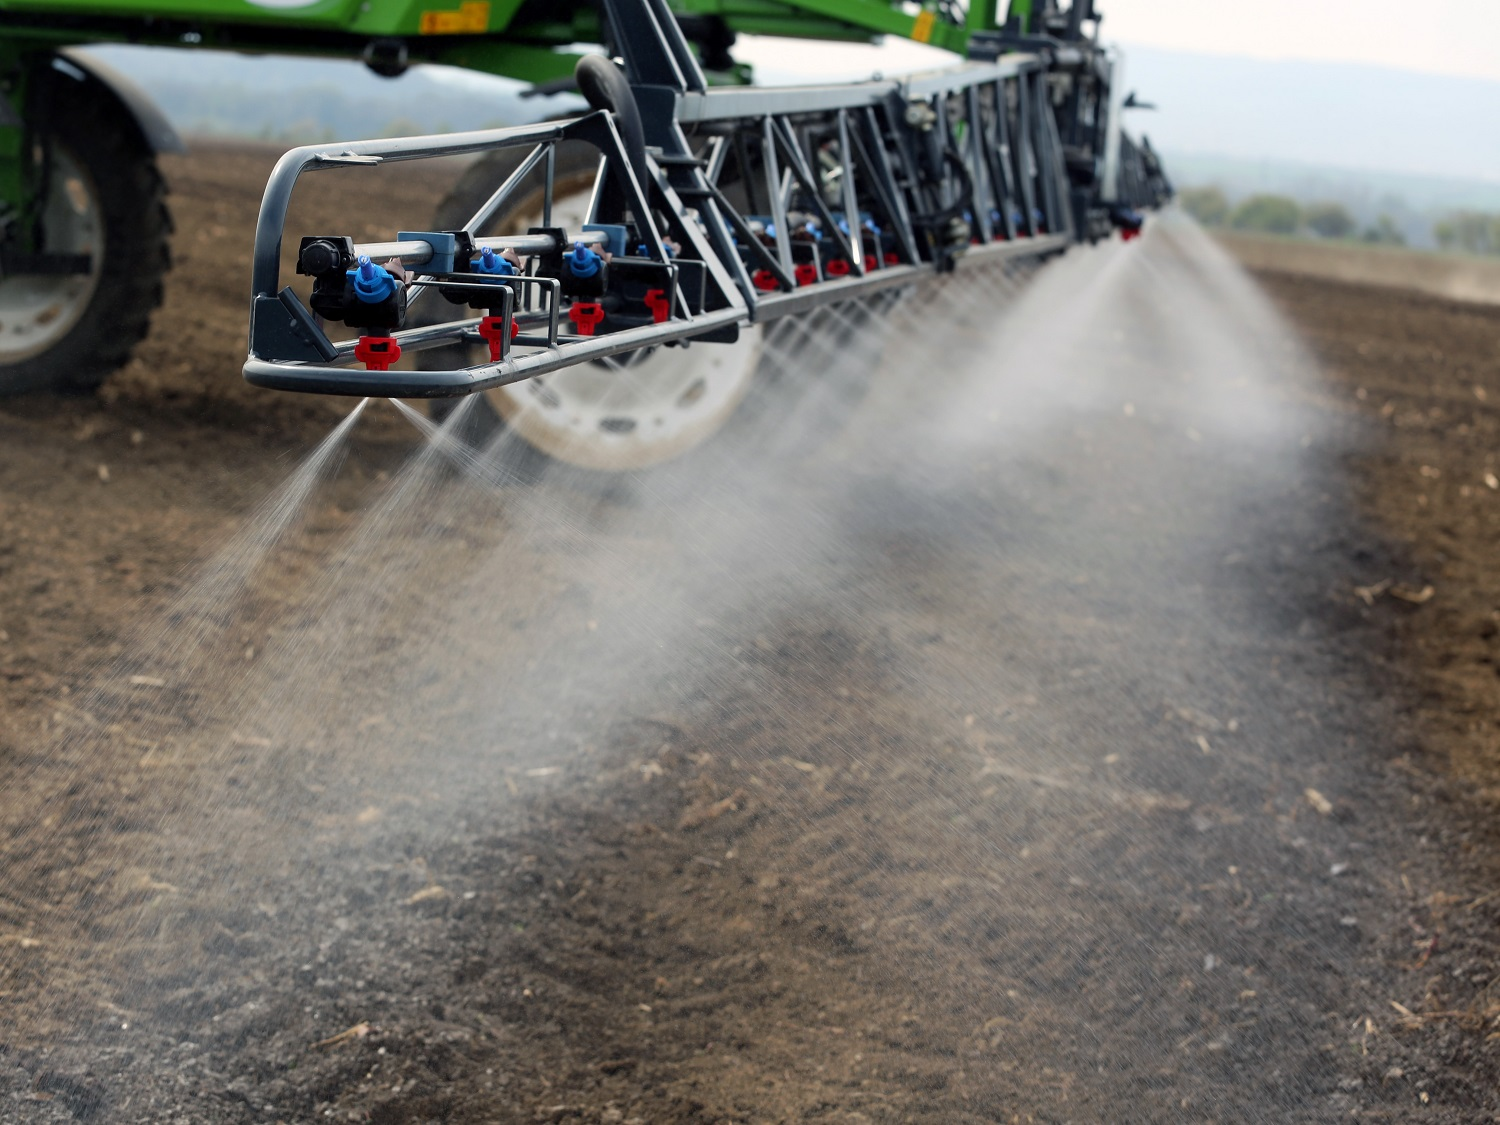 Using herbicides to prepare a field for sowing